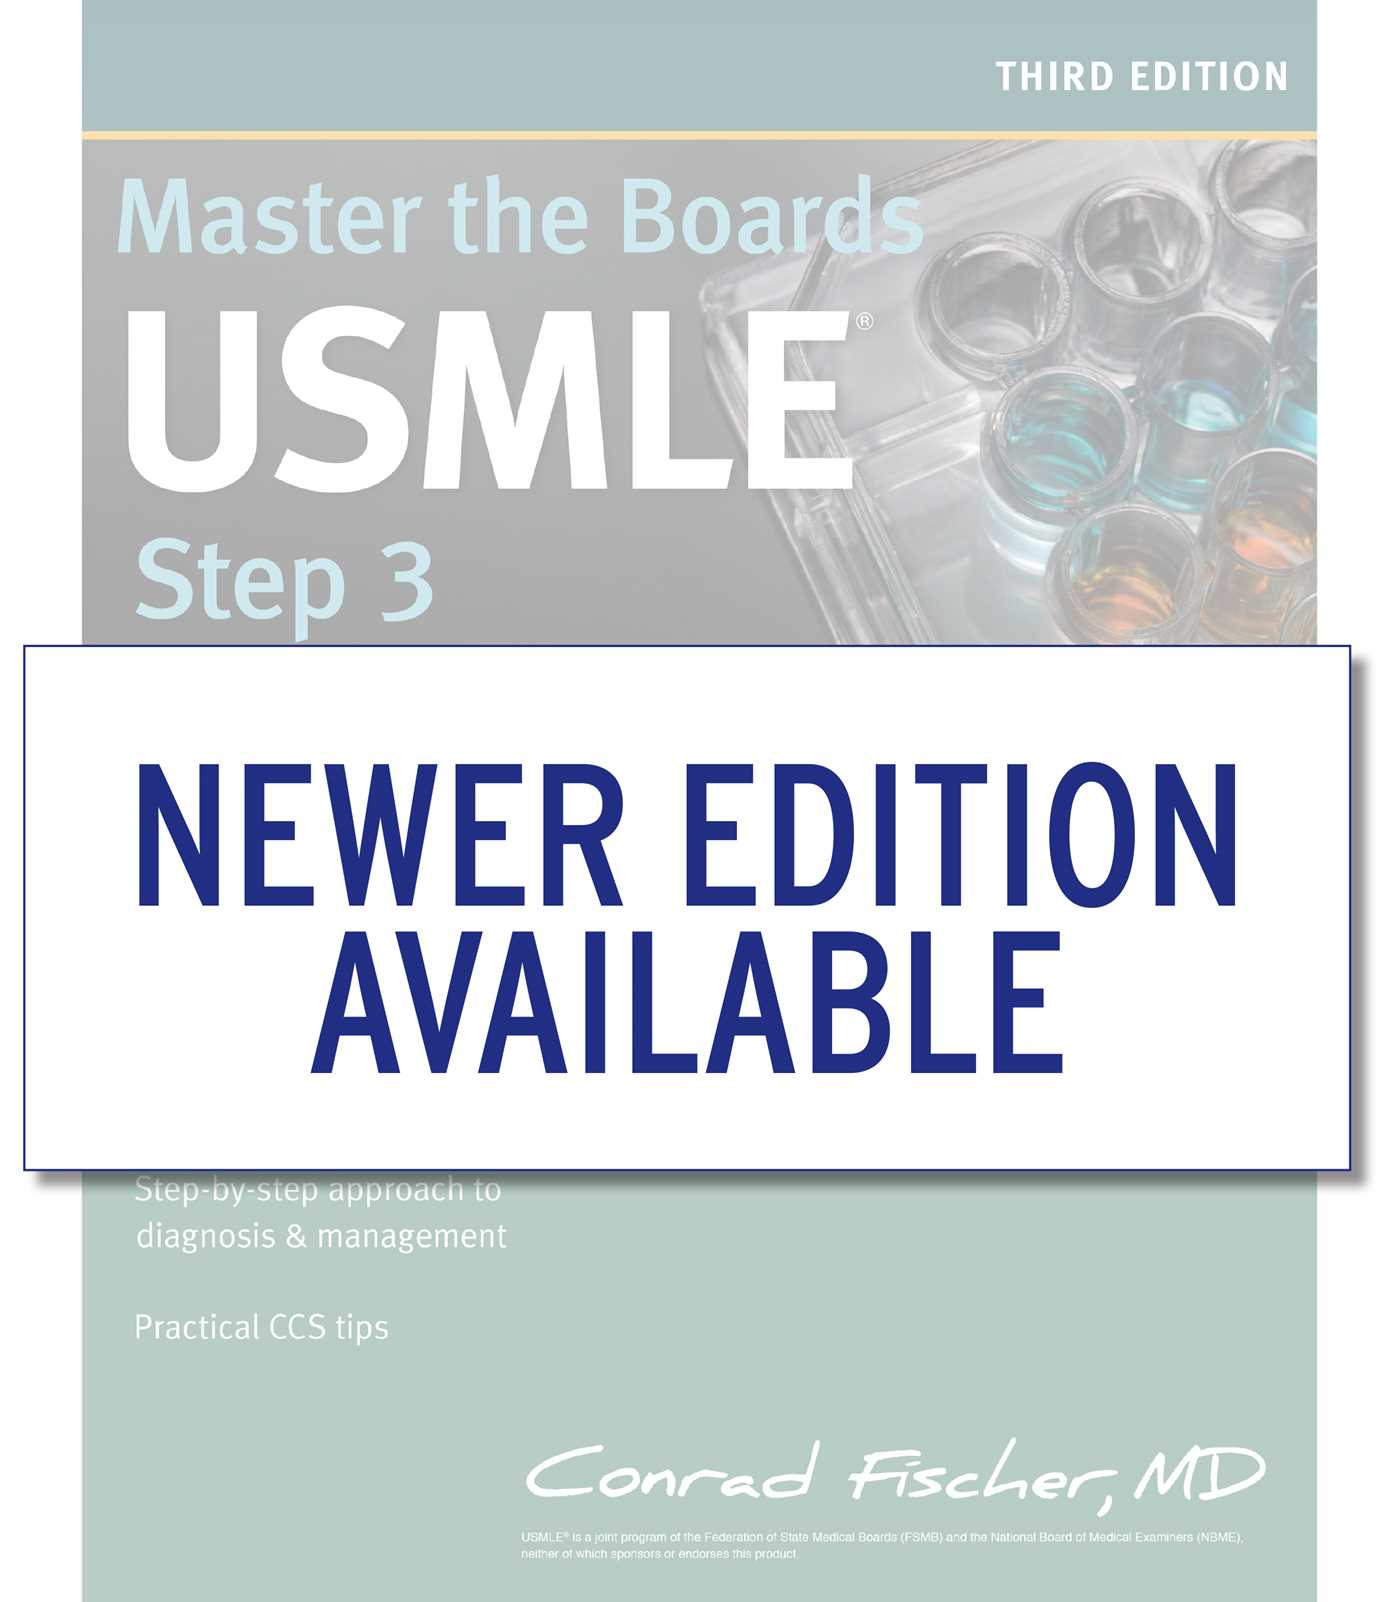 Master-the-boards-usmle-step-3-9781618653758_hr